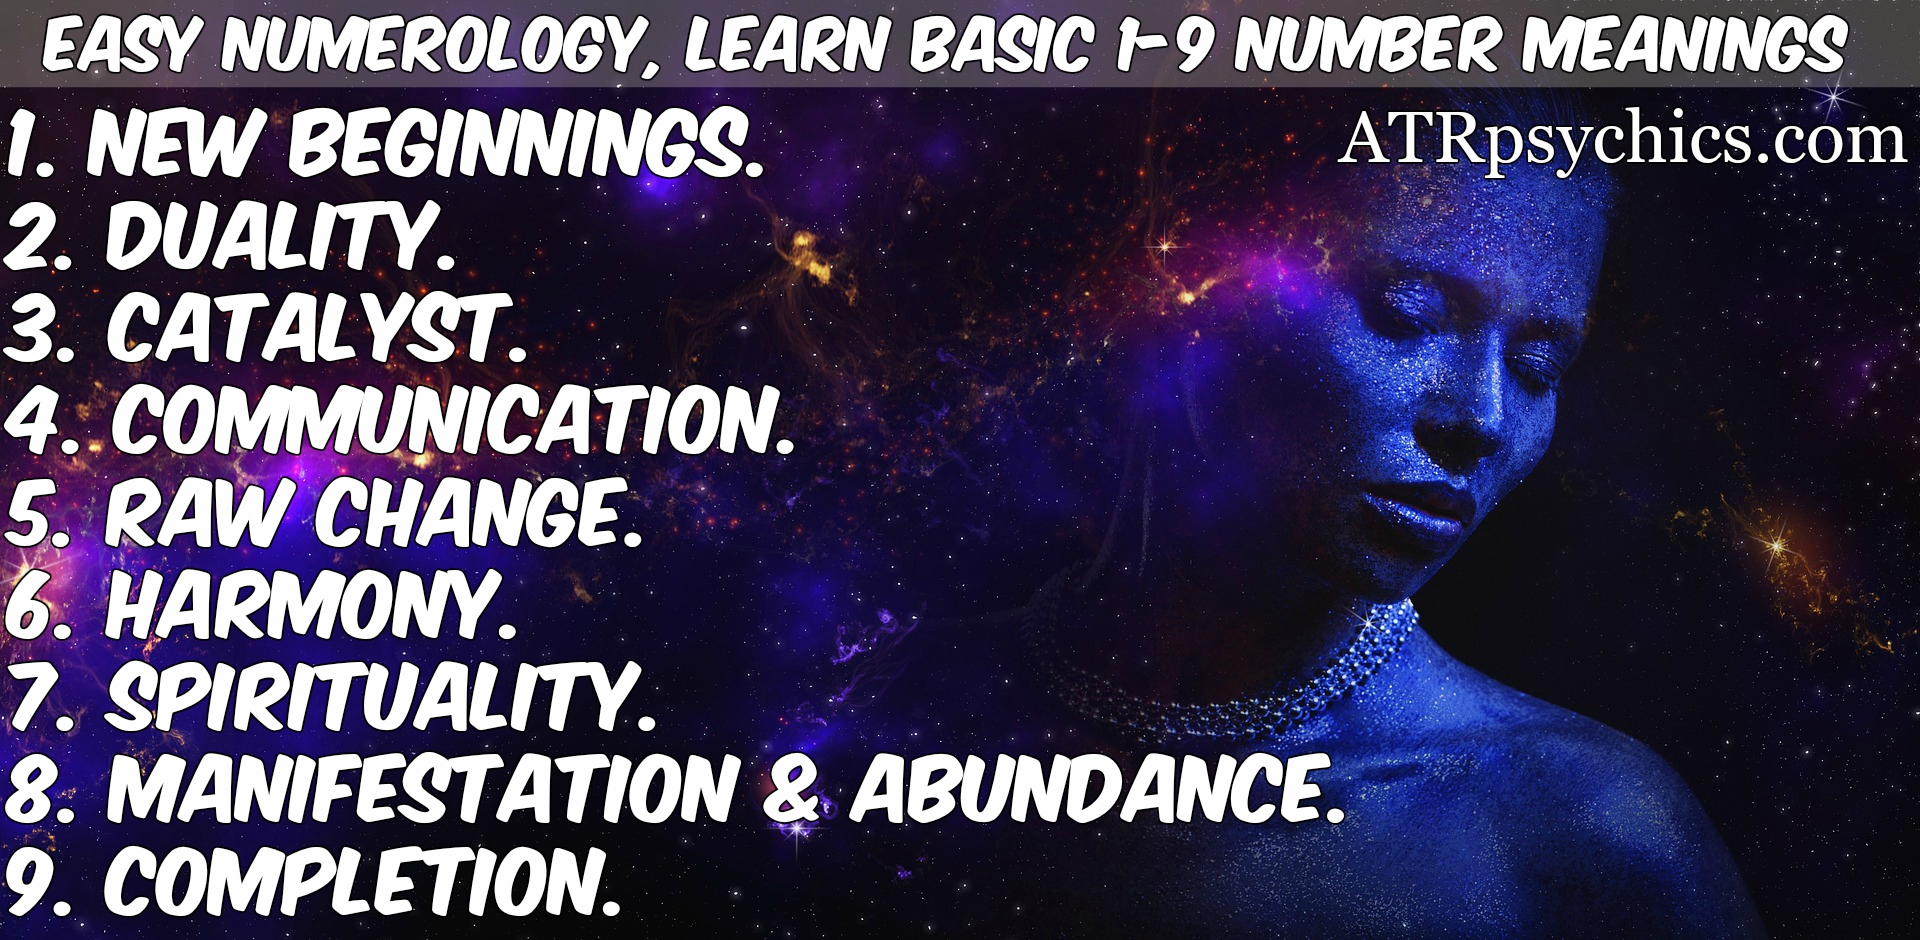 Easy Numerology  Learn Basic 1